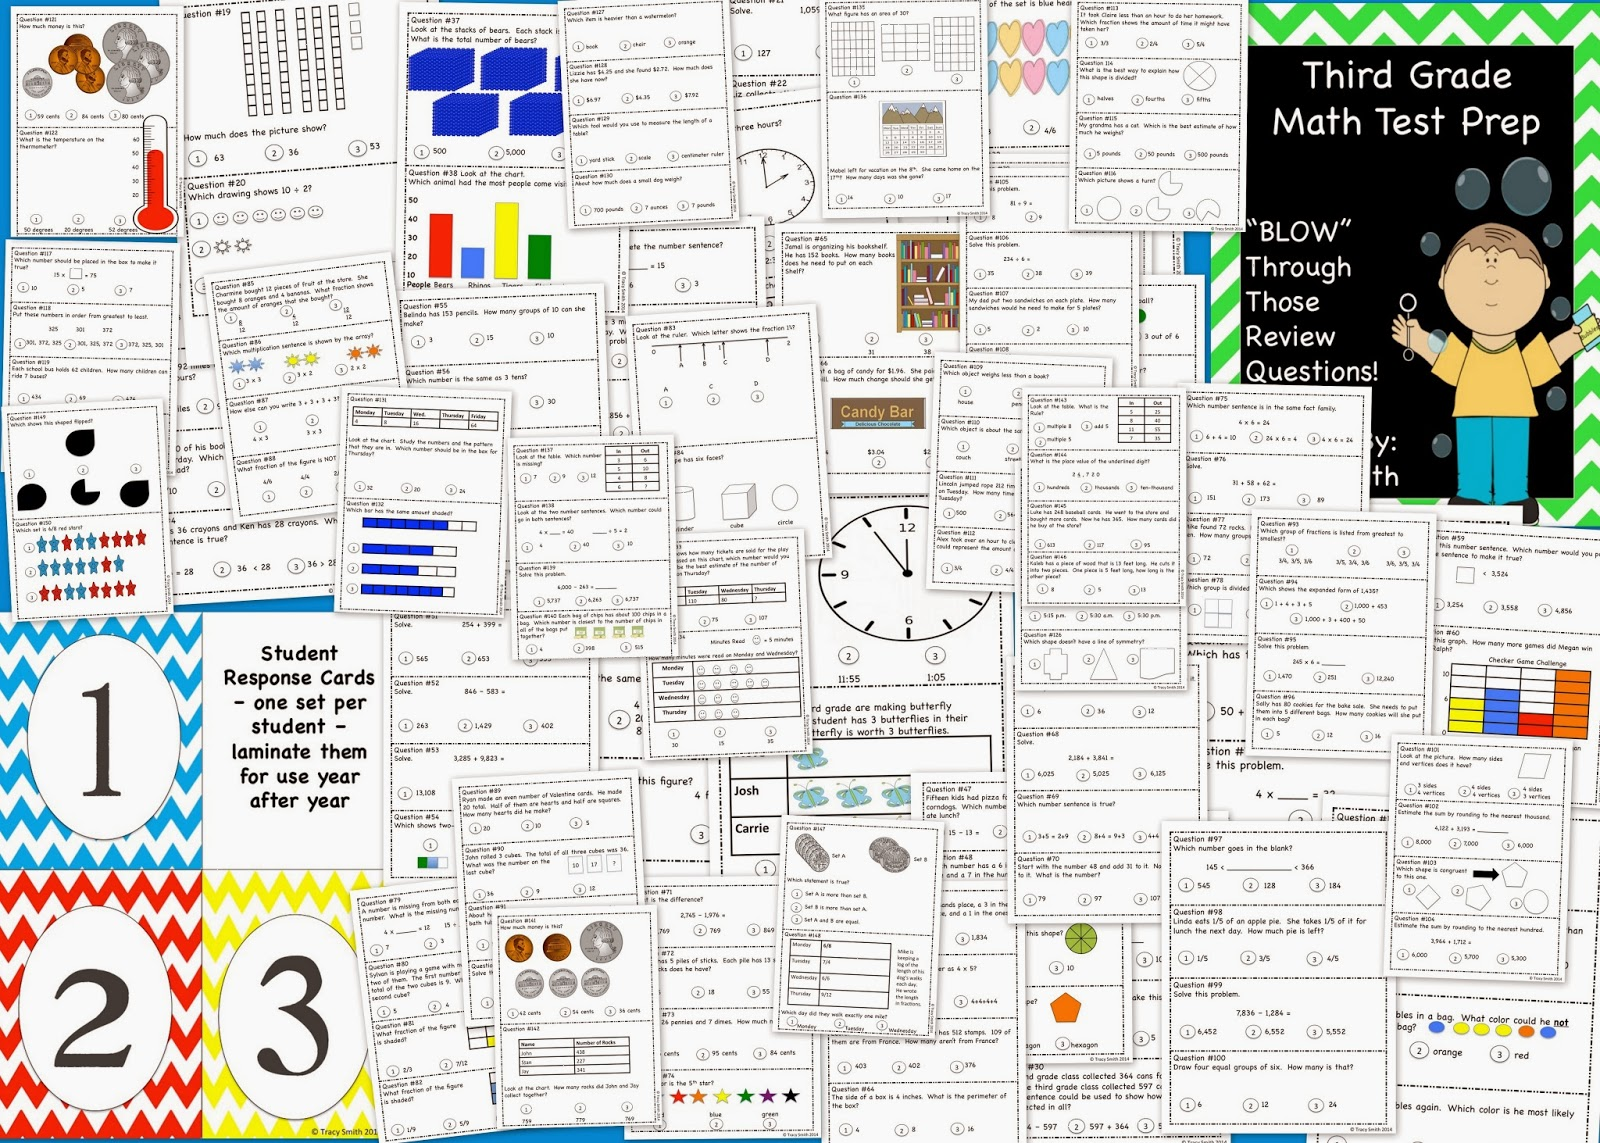 http://www.teacherspayteachers.com/Product/Grade-3-Math-Test-Prep-Get-Ready-for-Standardized-Testing-1040795